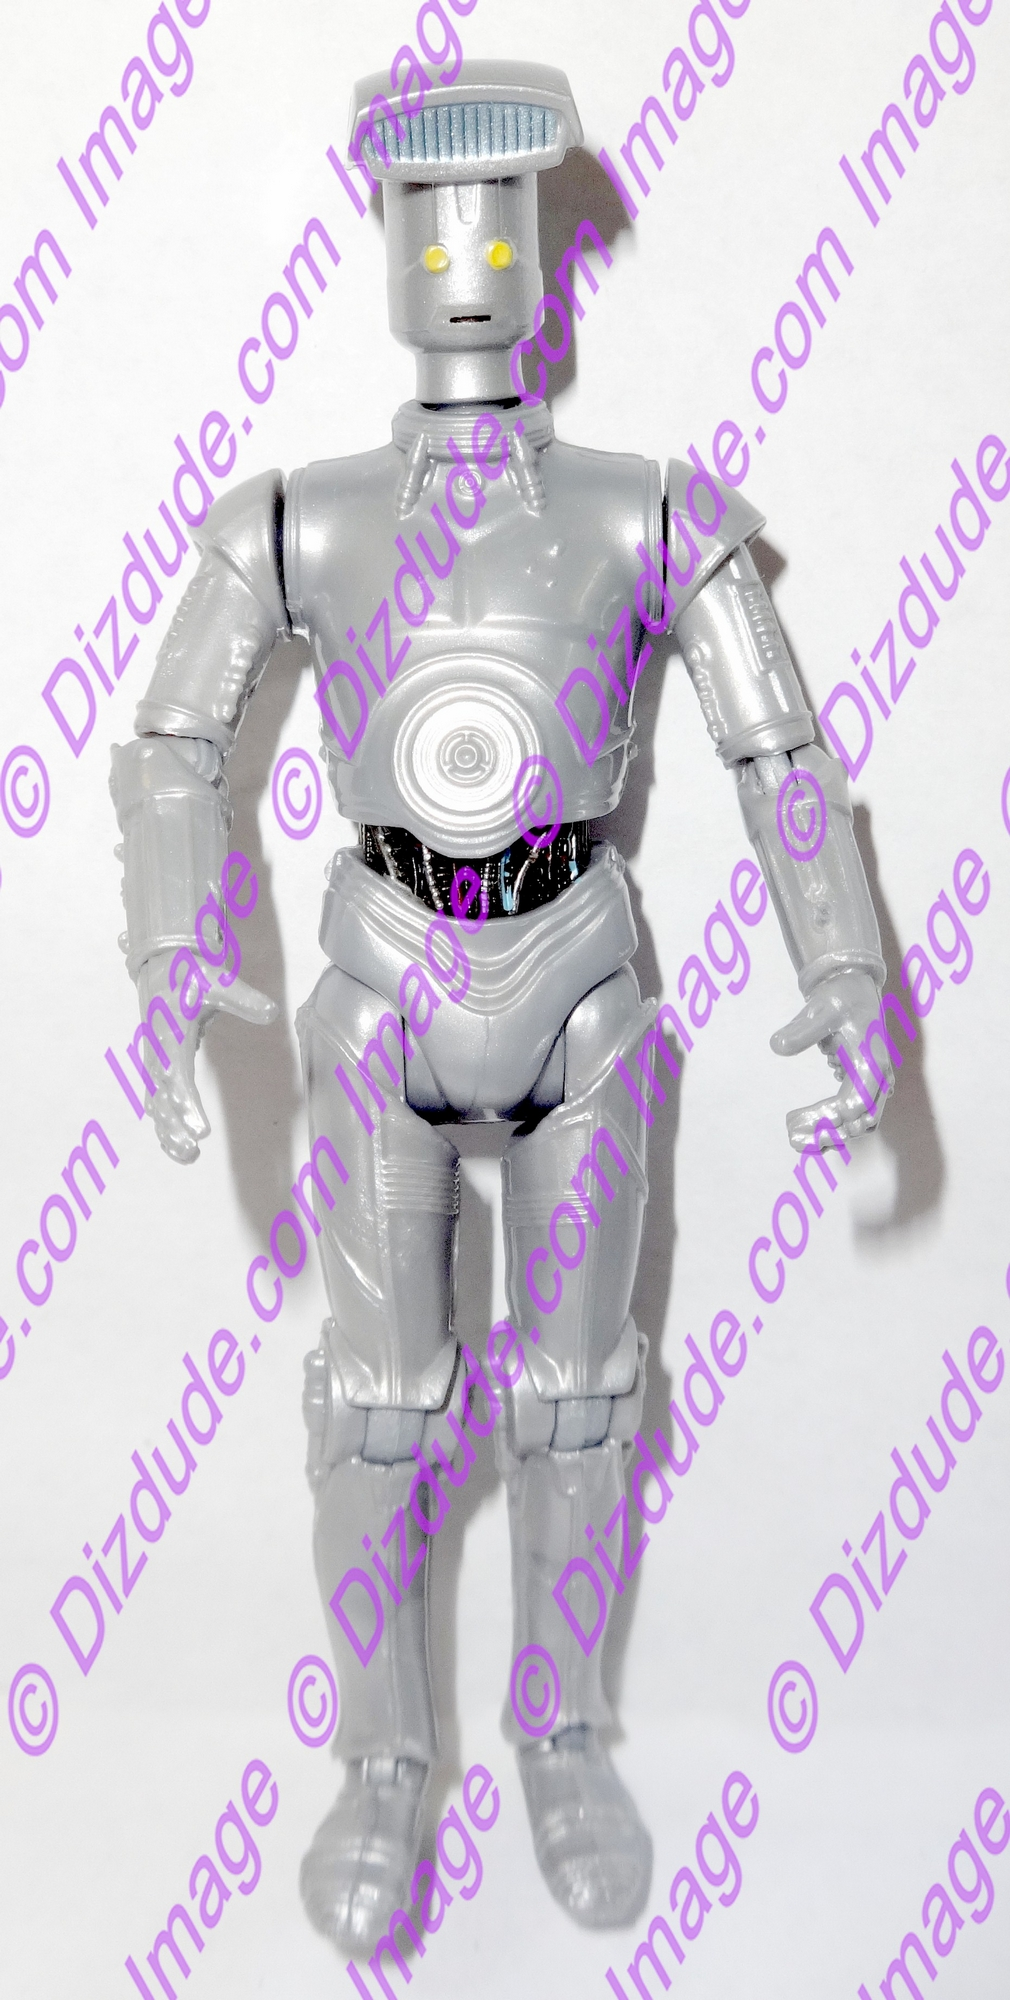 Silver Vender Protocol Droid from Disney Star Wars Build-A-Droid Factory